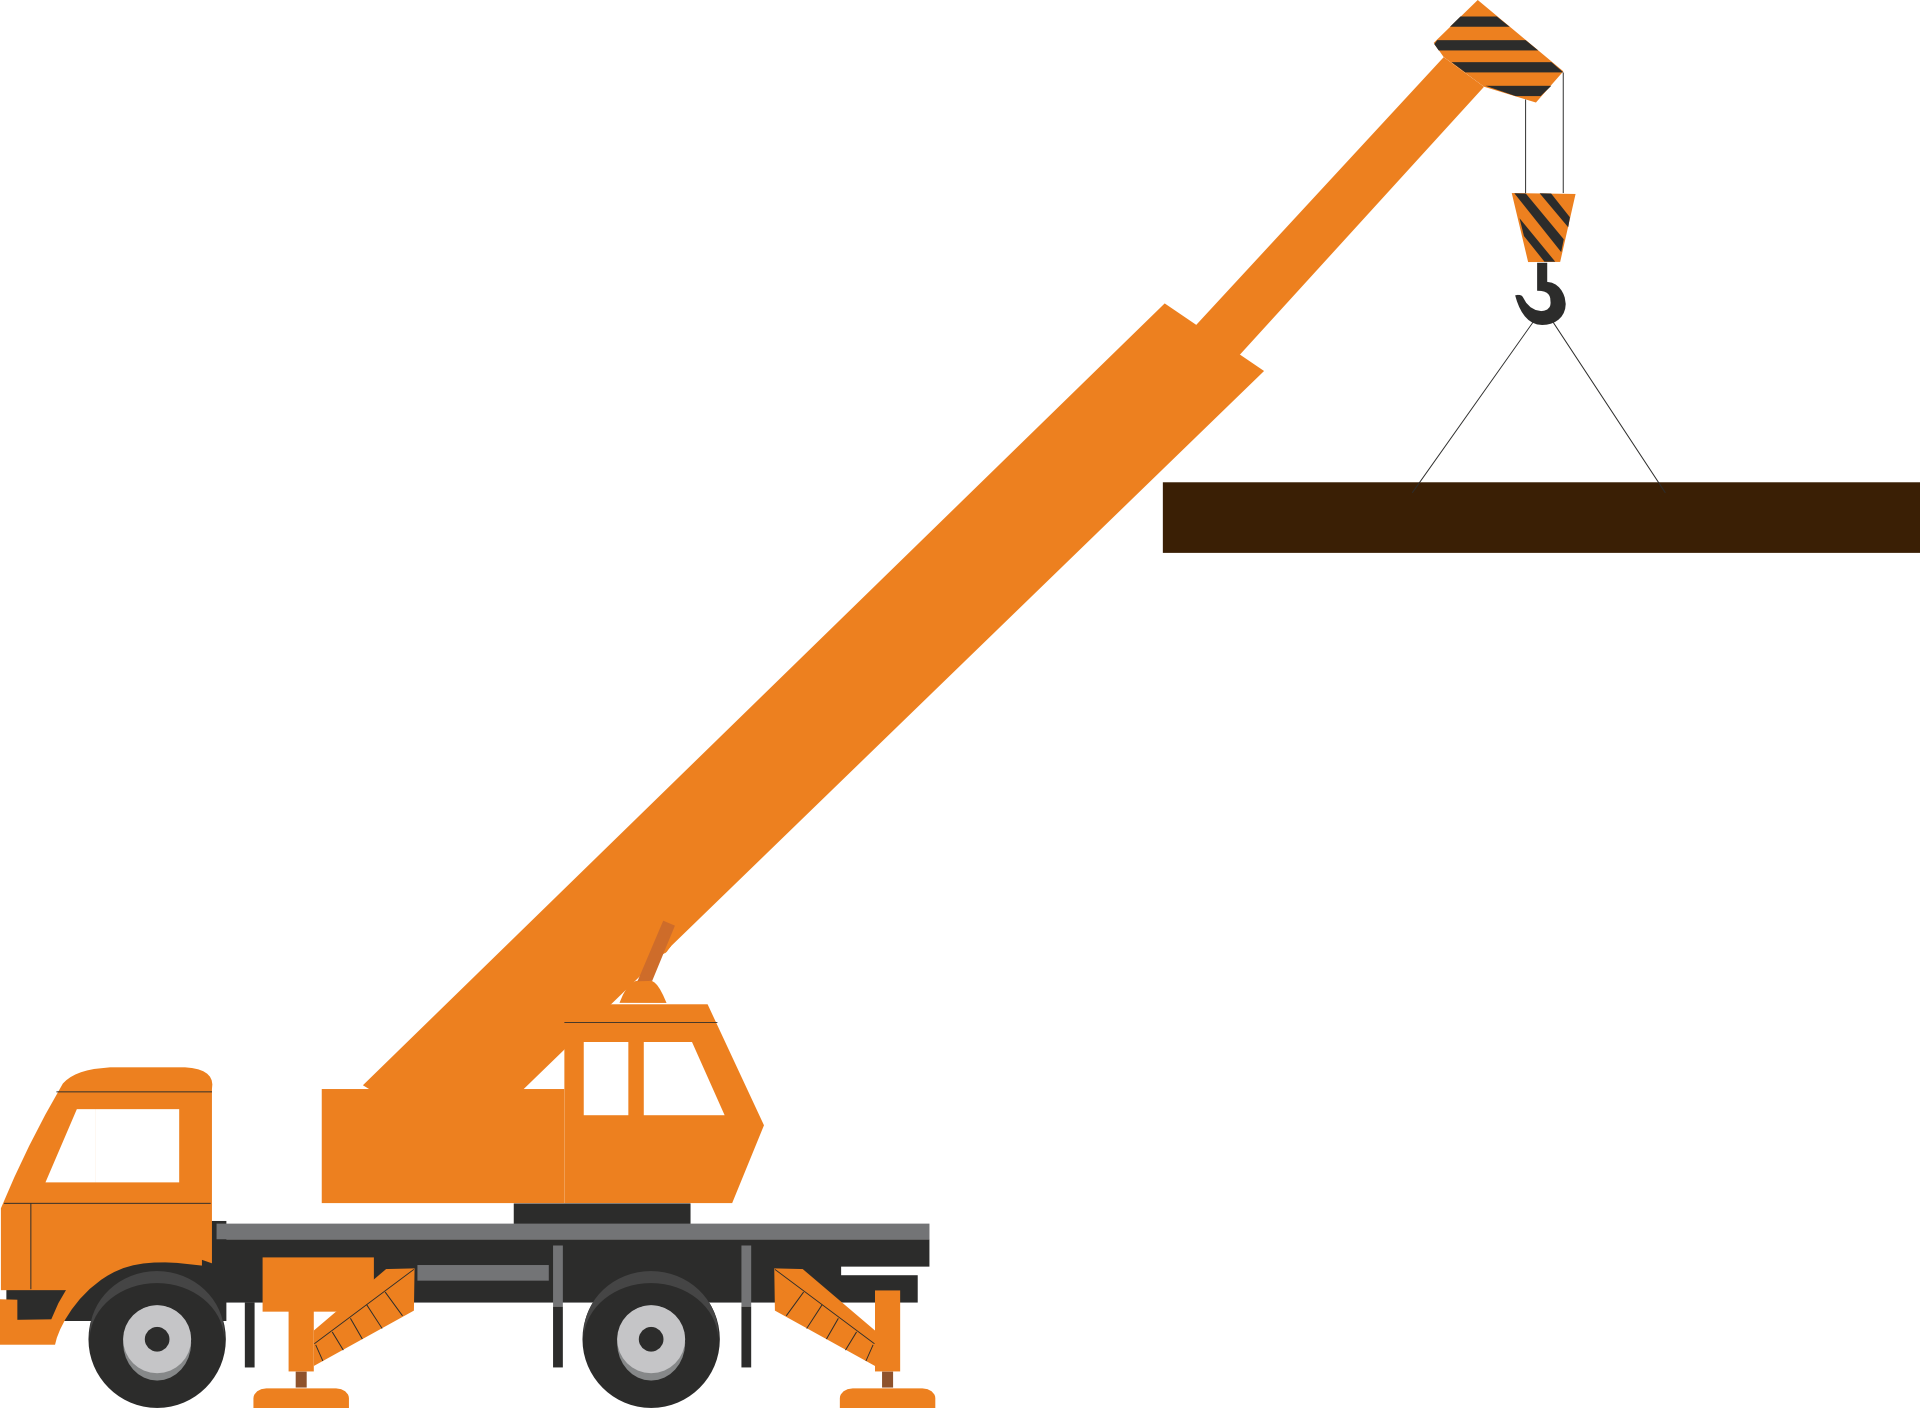 clip royalty free download Construction Crane Clipart at GetDrawings